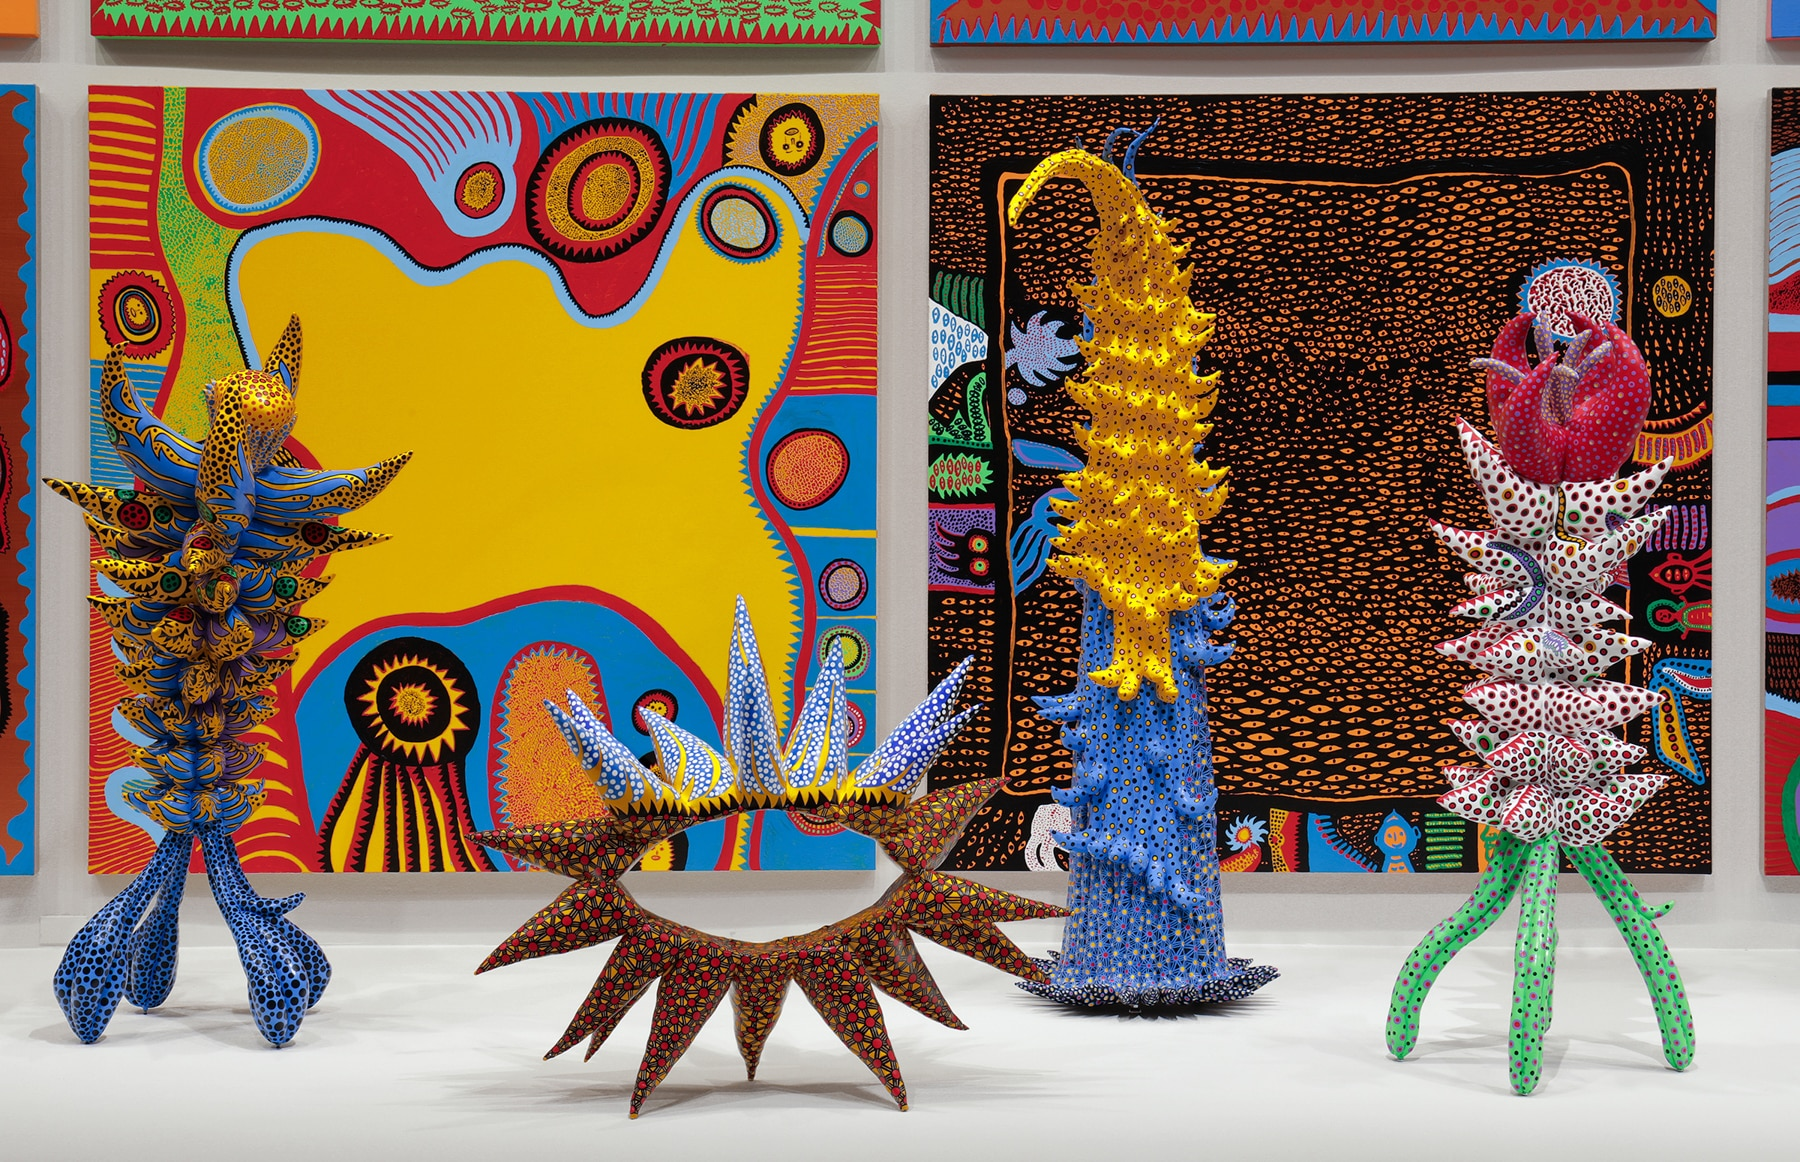 Colorful and whimsical sculptures and paintings (Hirshhorn Museum)